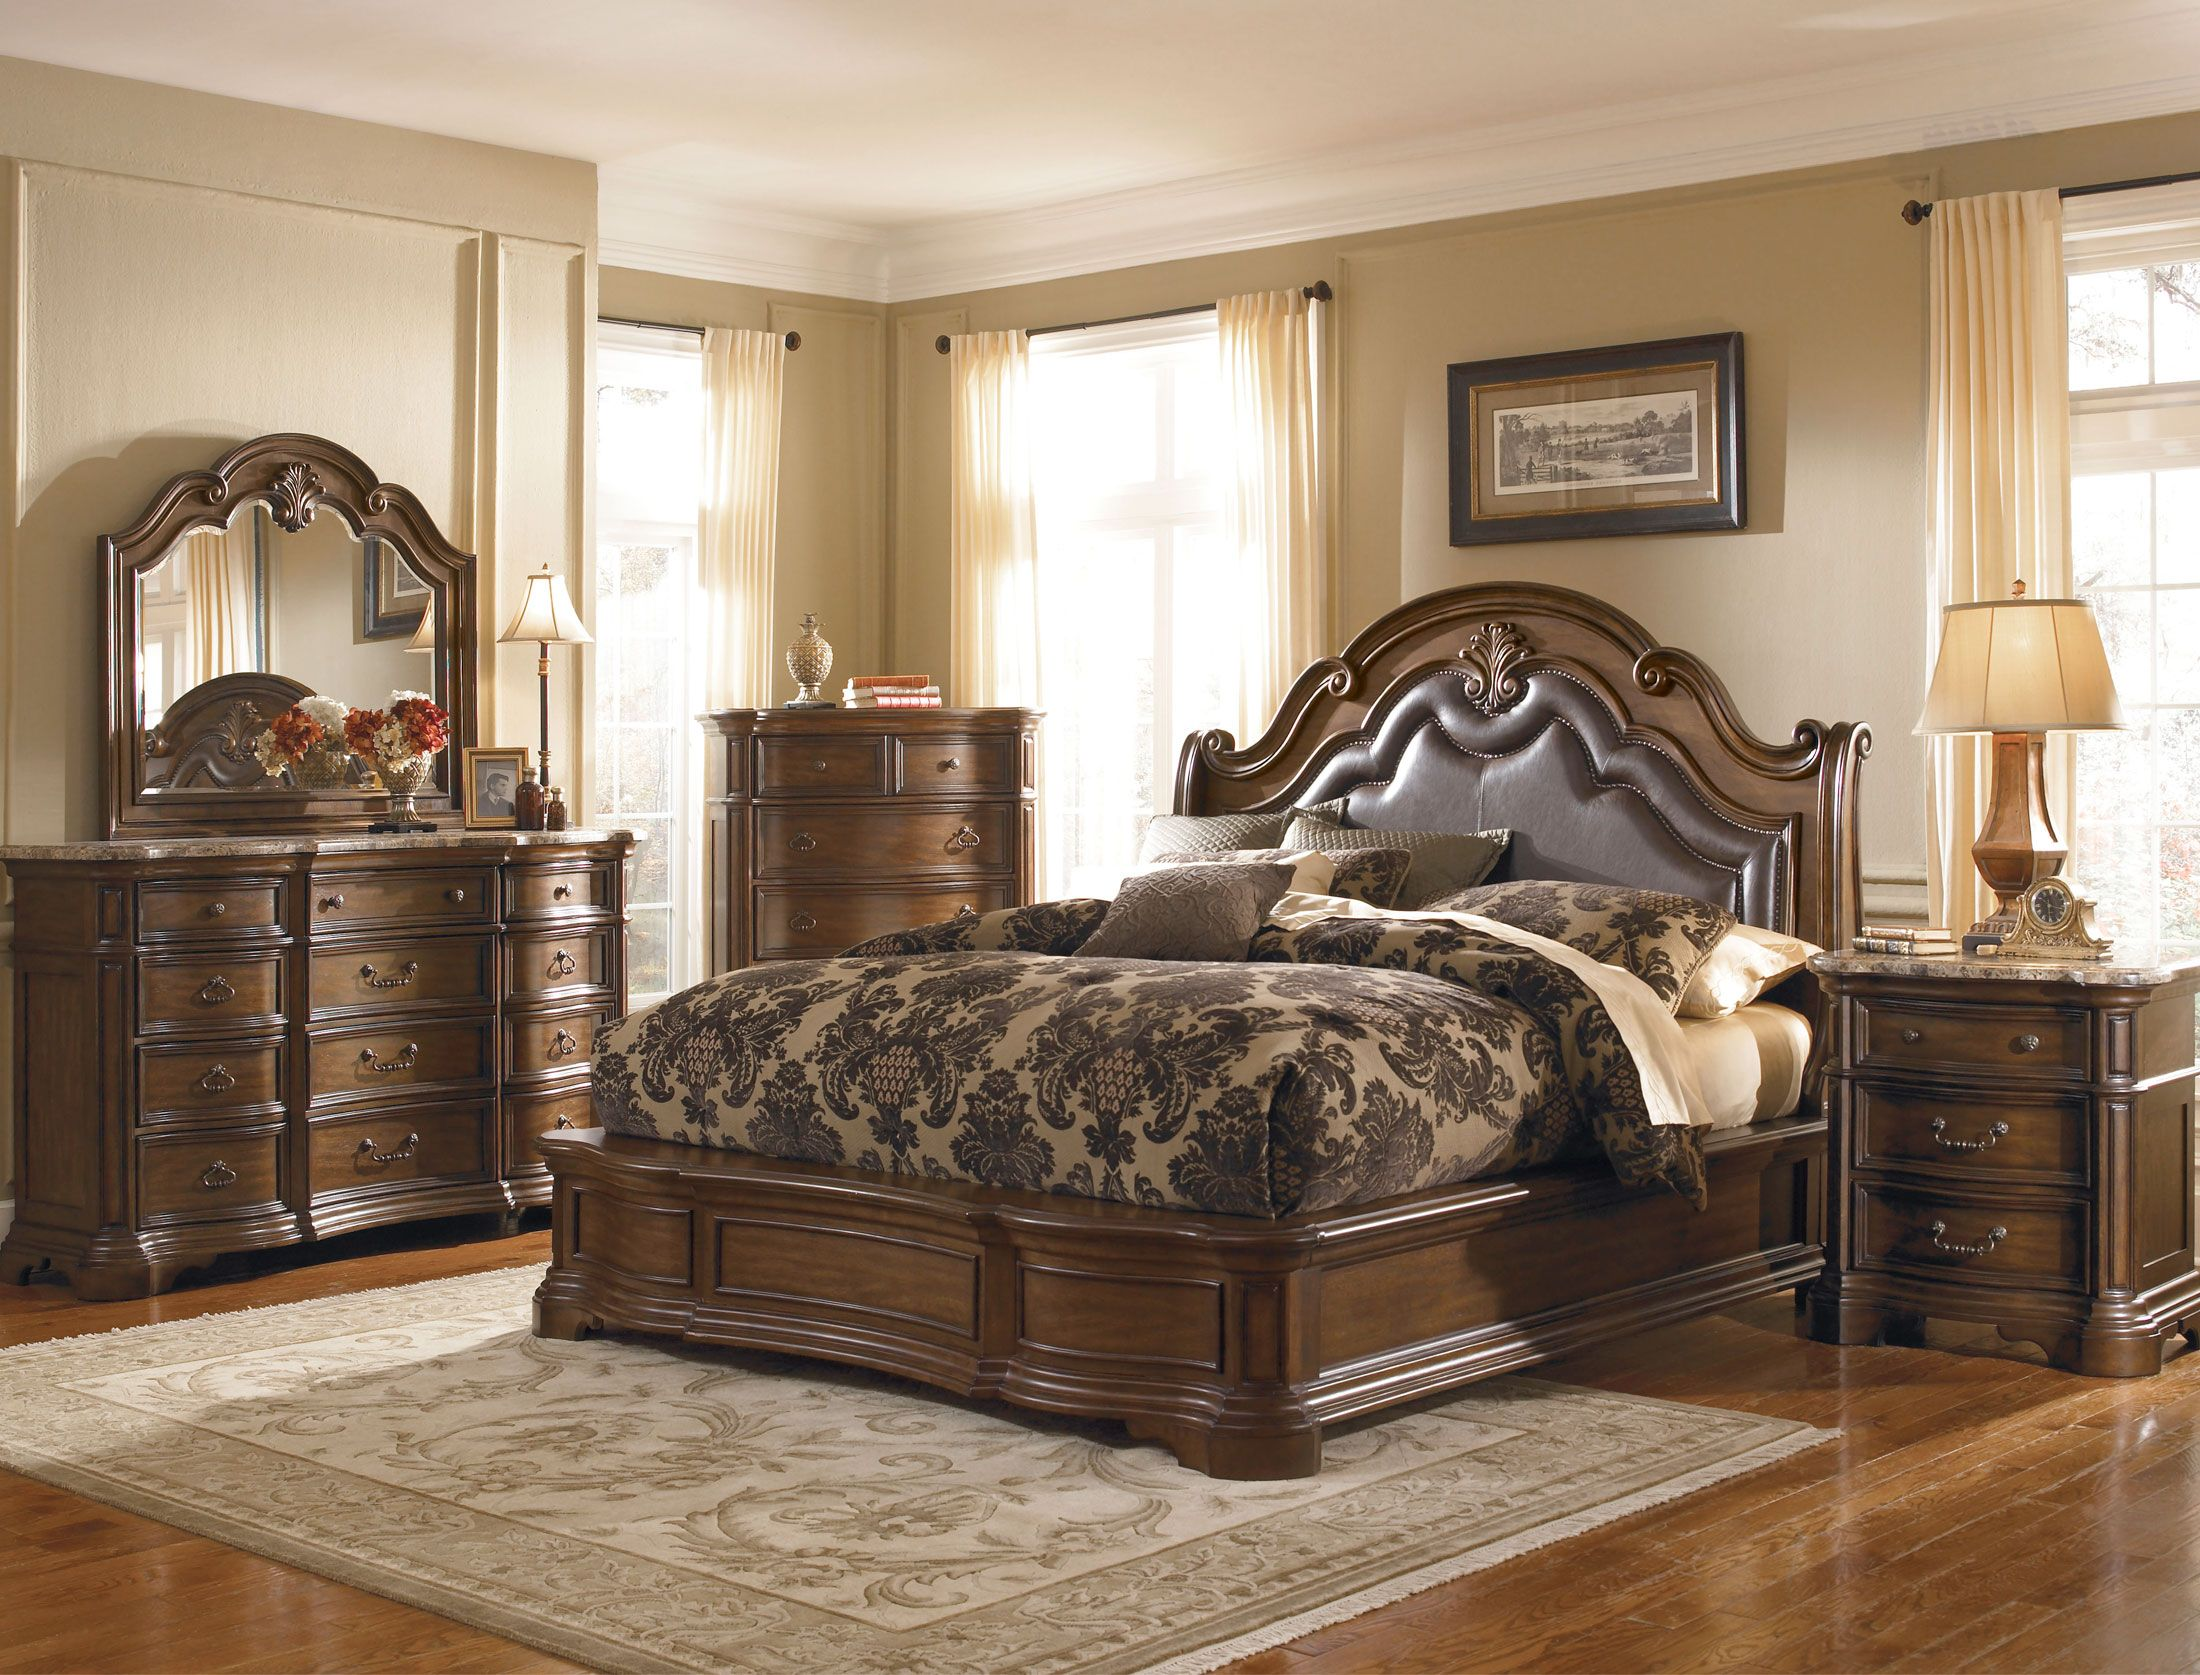 Bedroom Boards Collection the courtland collection has a stately traditional look with a